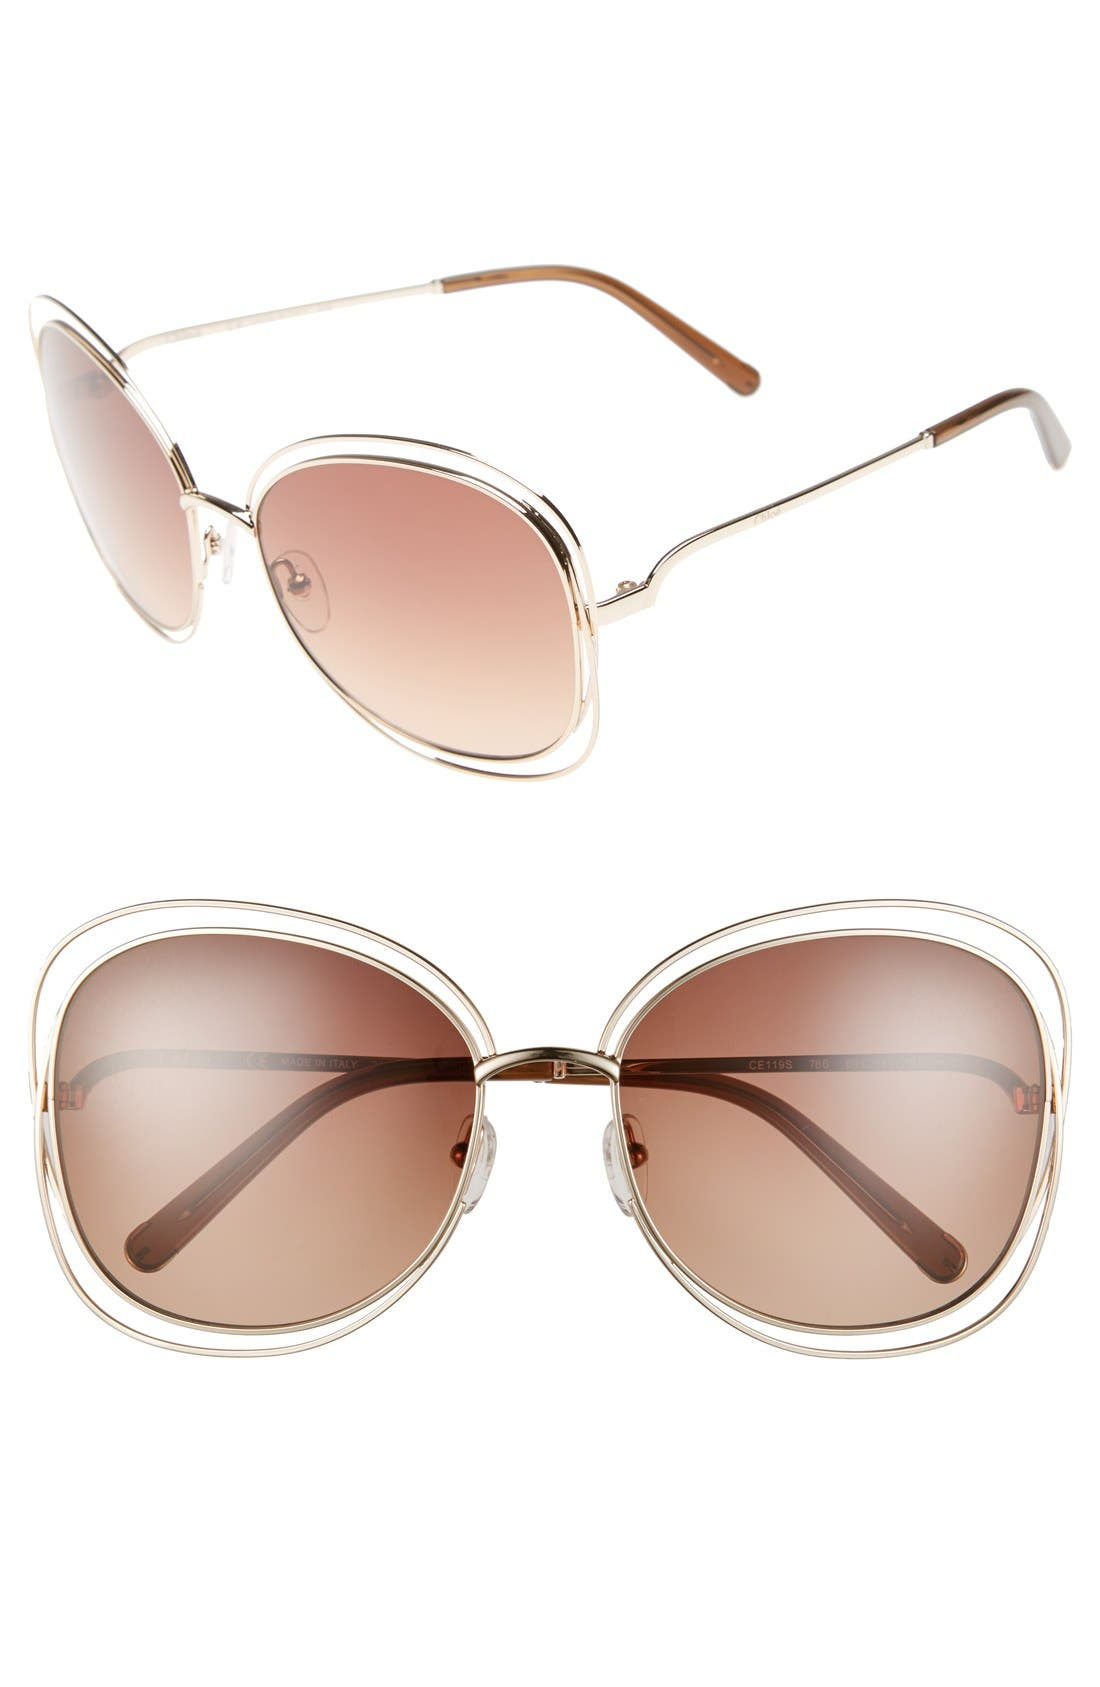 CHLOÉ,                             Carlina 60mm Gradient Les Sunglasses,                             Main thumbnail 1, color,                             ROSE GOLD/ BROWN